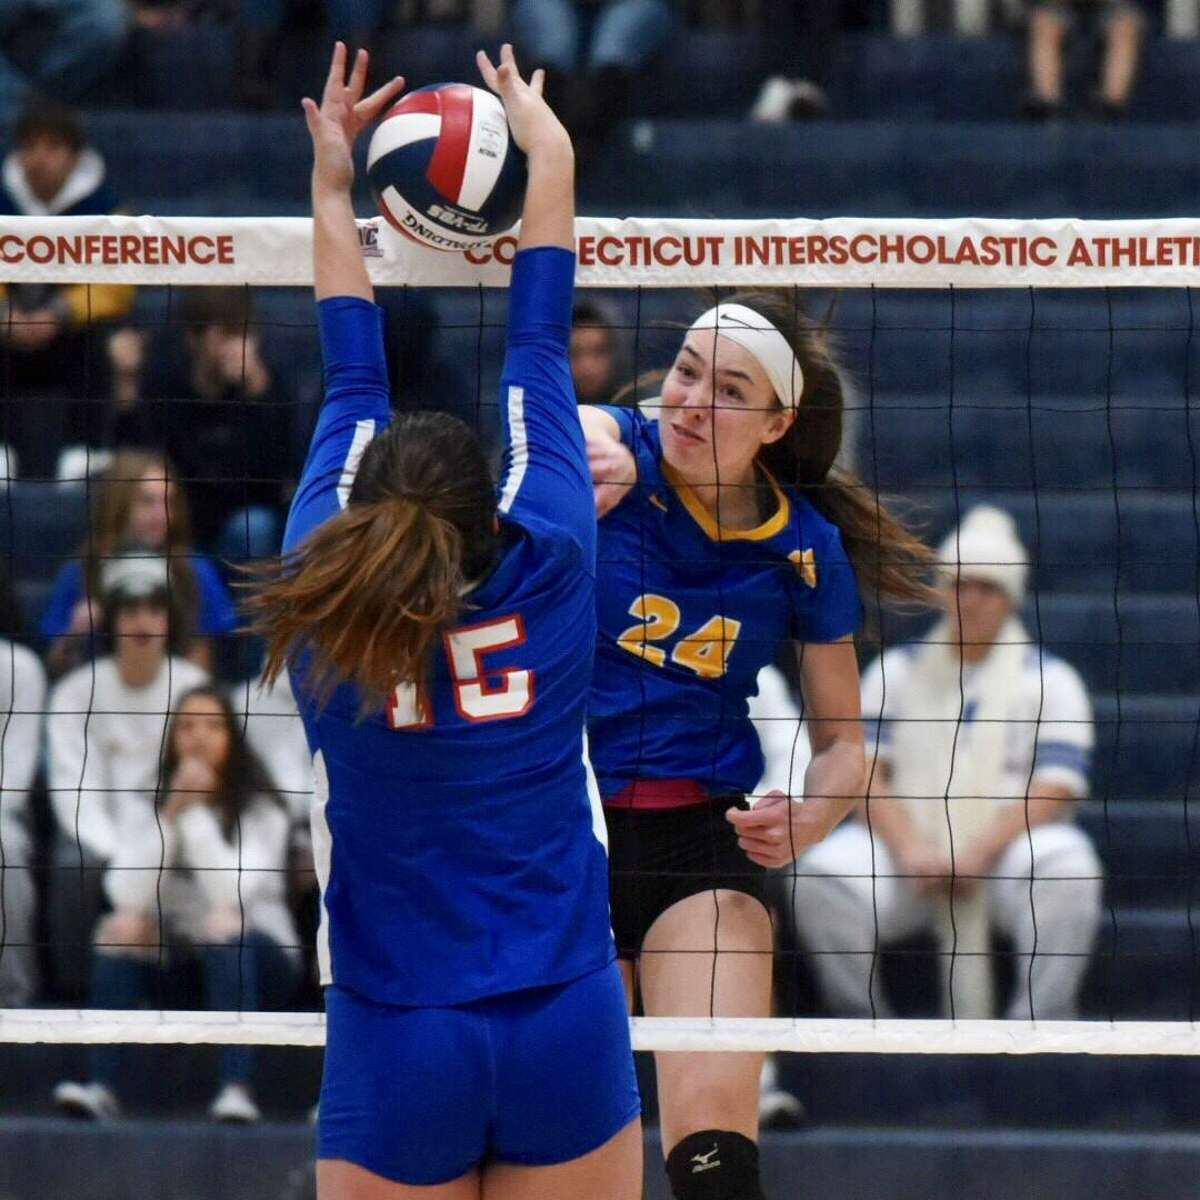 Seymour's Faith Rousseau (24) puts a shot last Waterford's Sabrina Kobyluck (15) during the CIAC Class M volleyball final at East Haven High on Saturday.